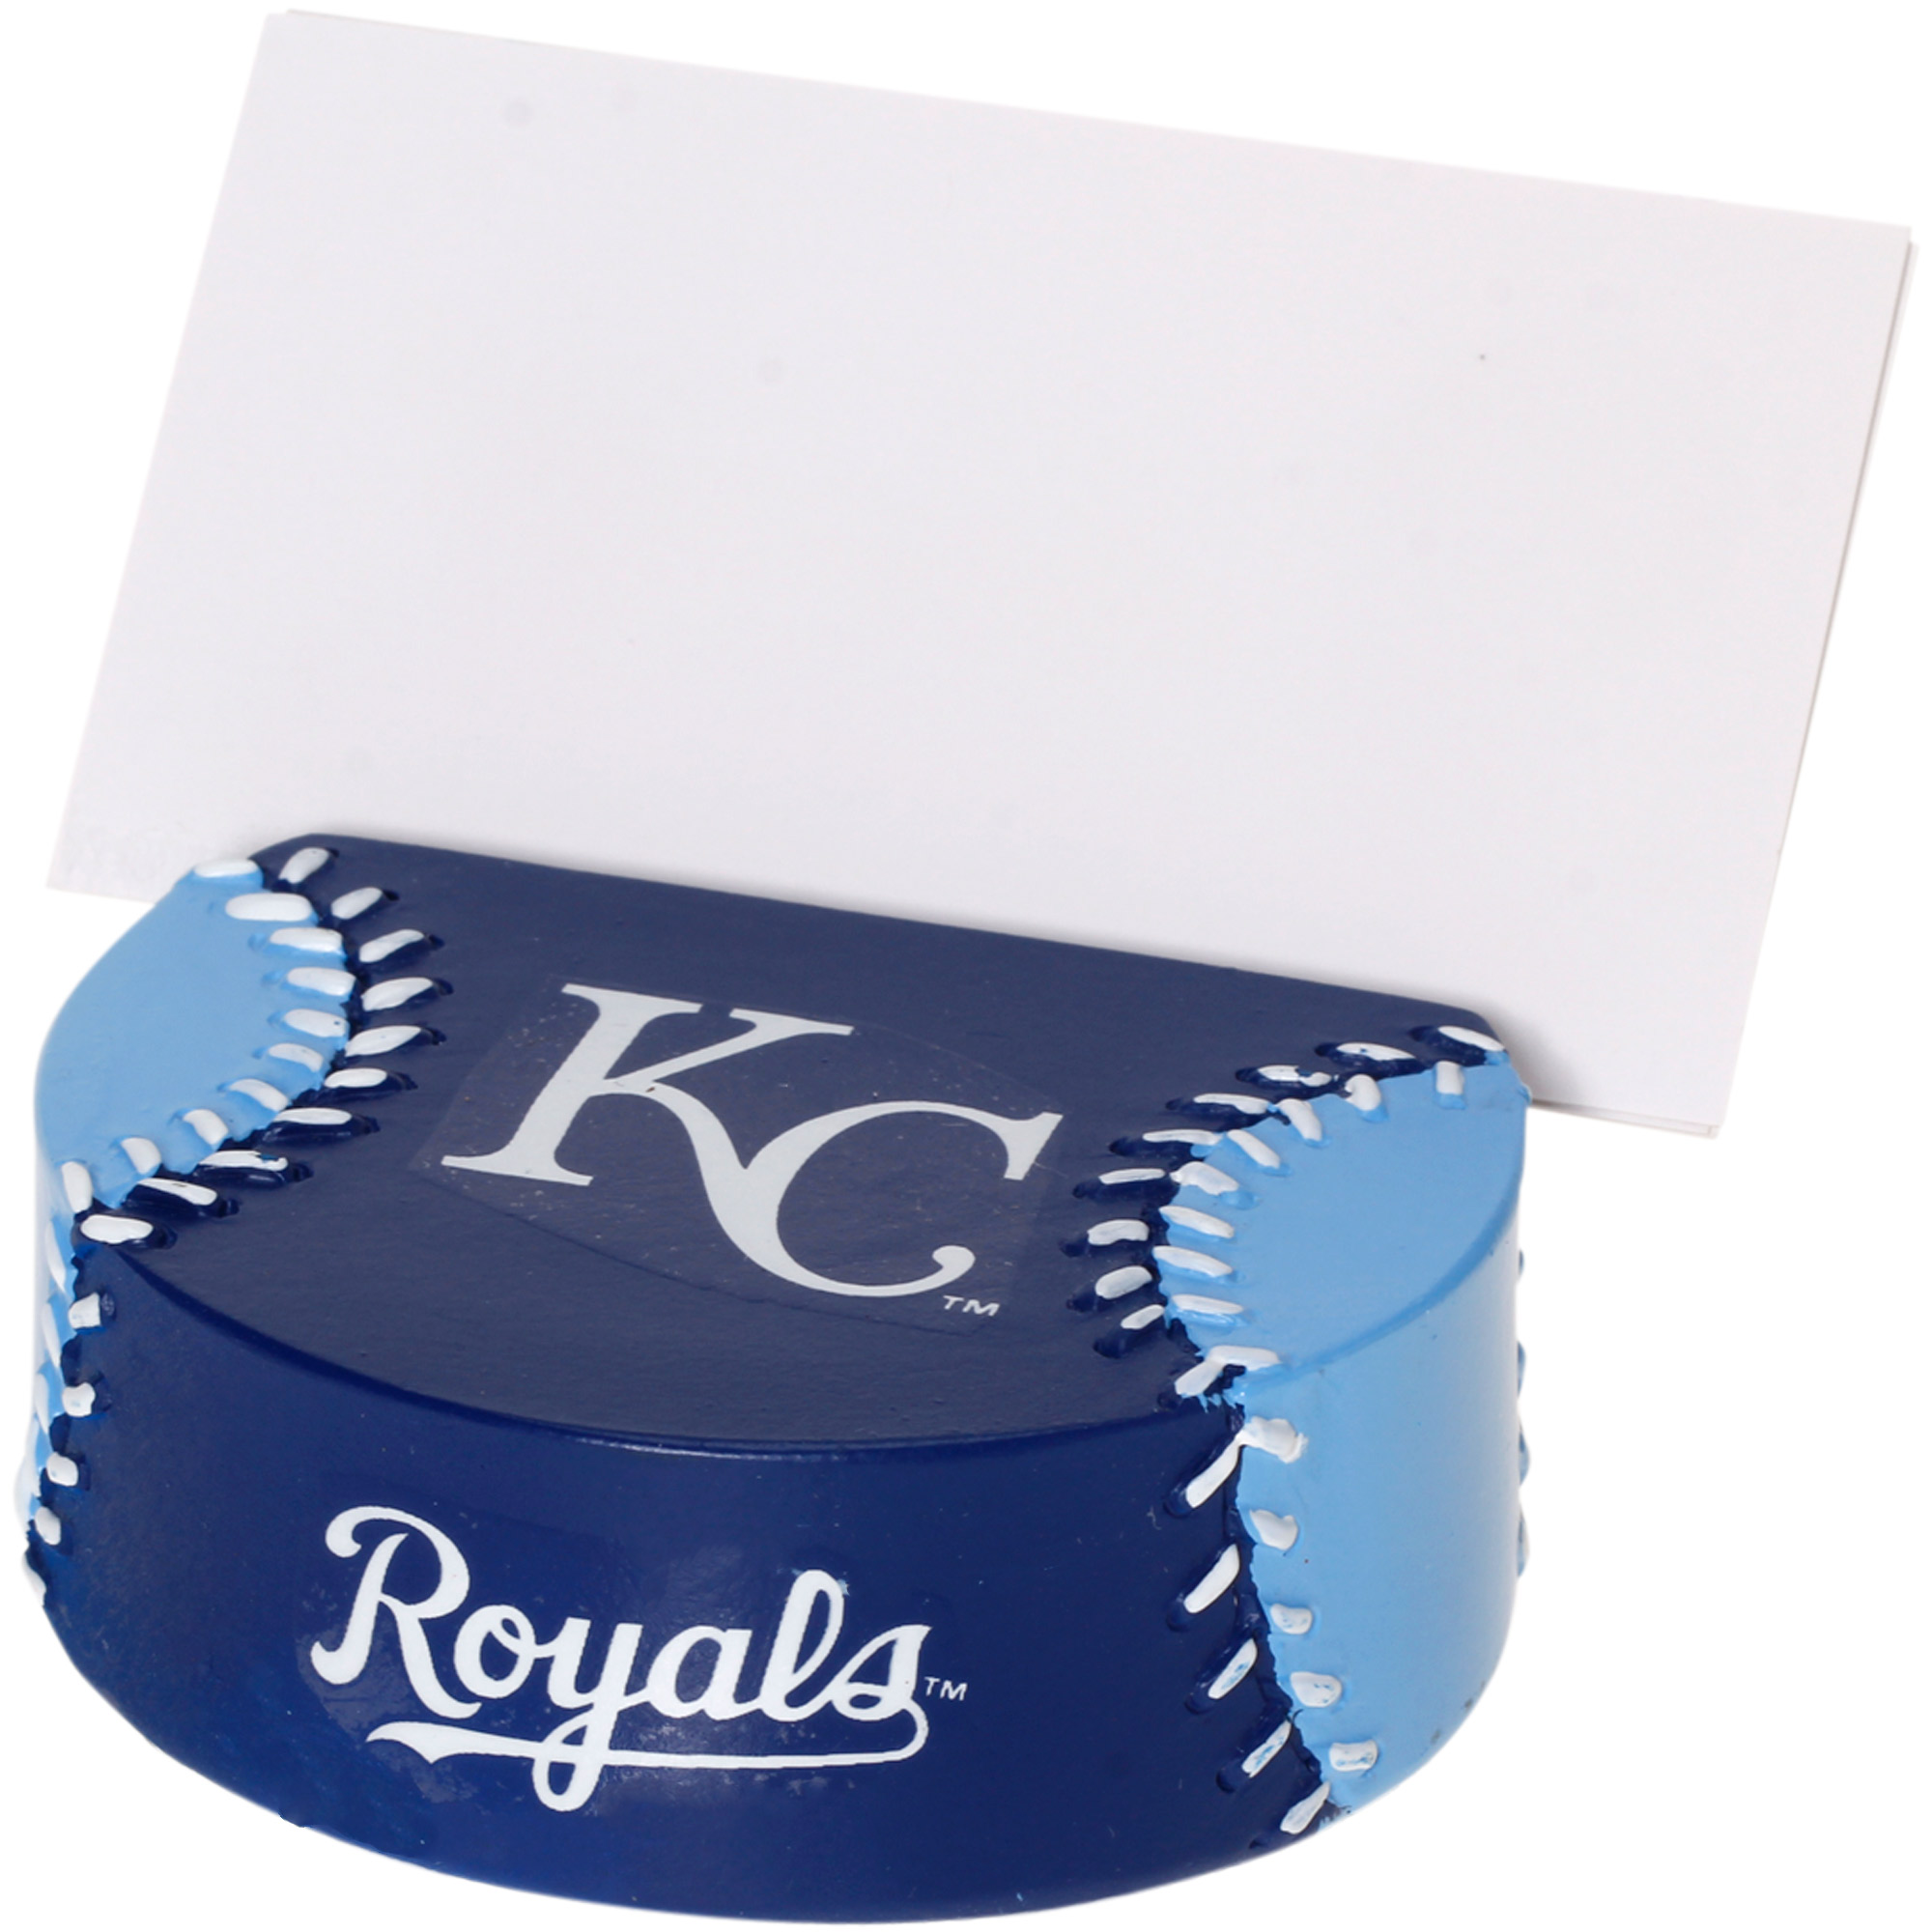 Kansas City Royals Card Holder - No Size